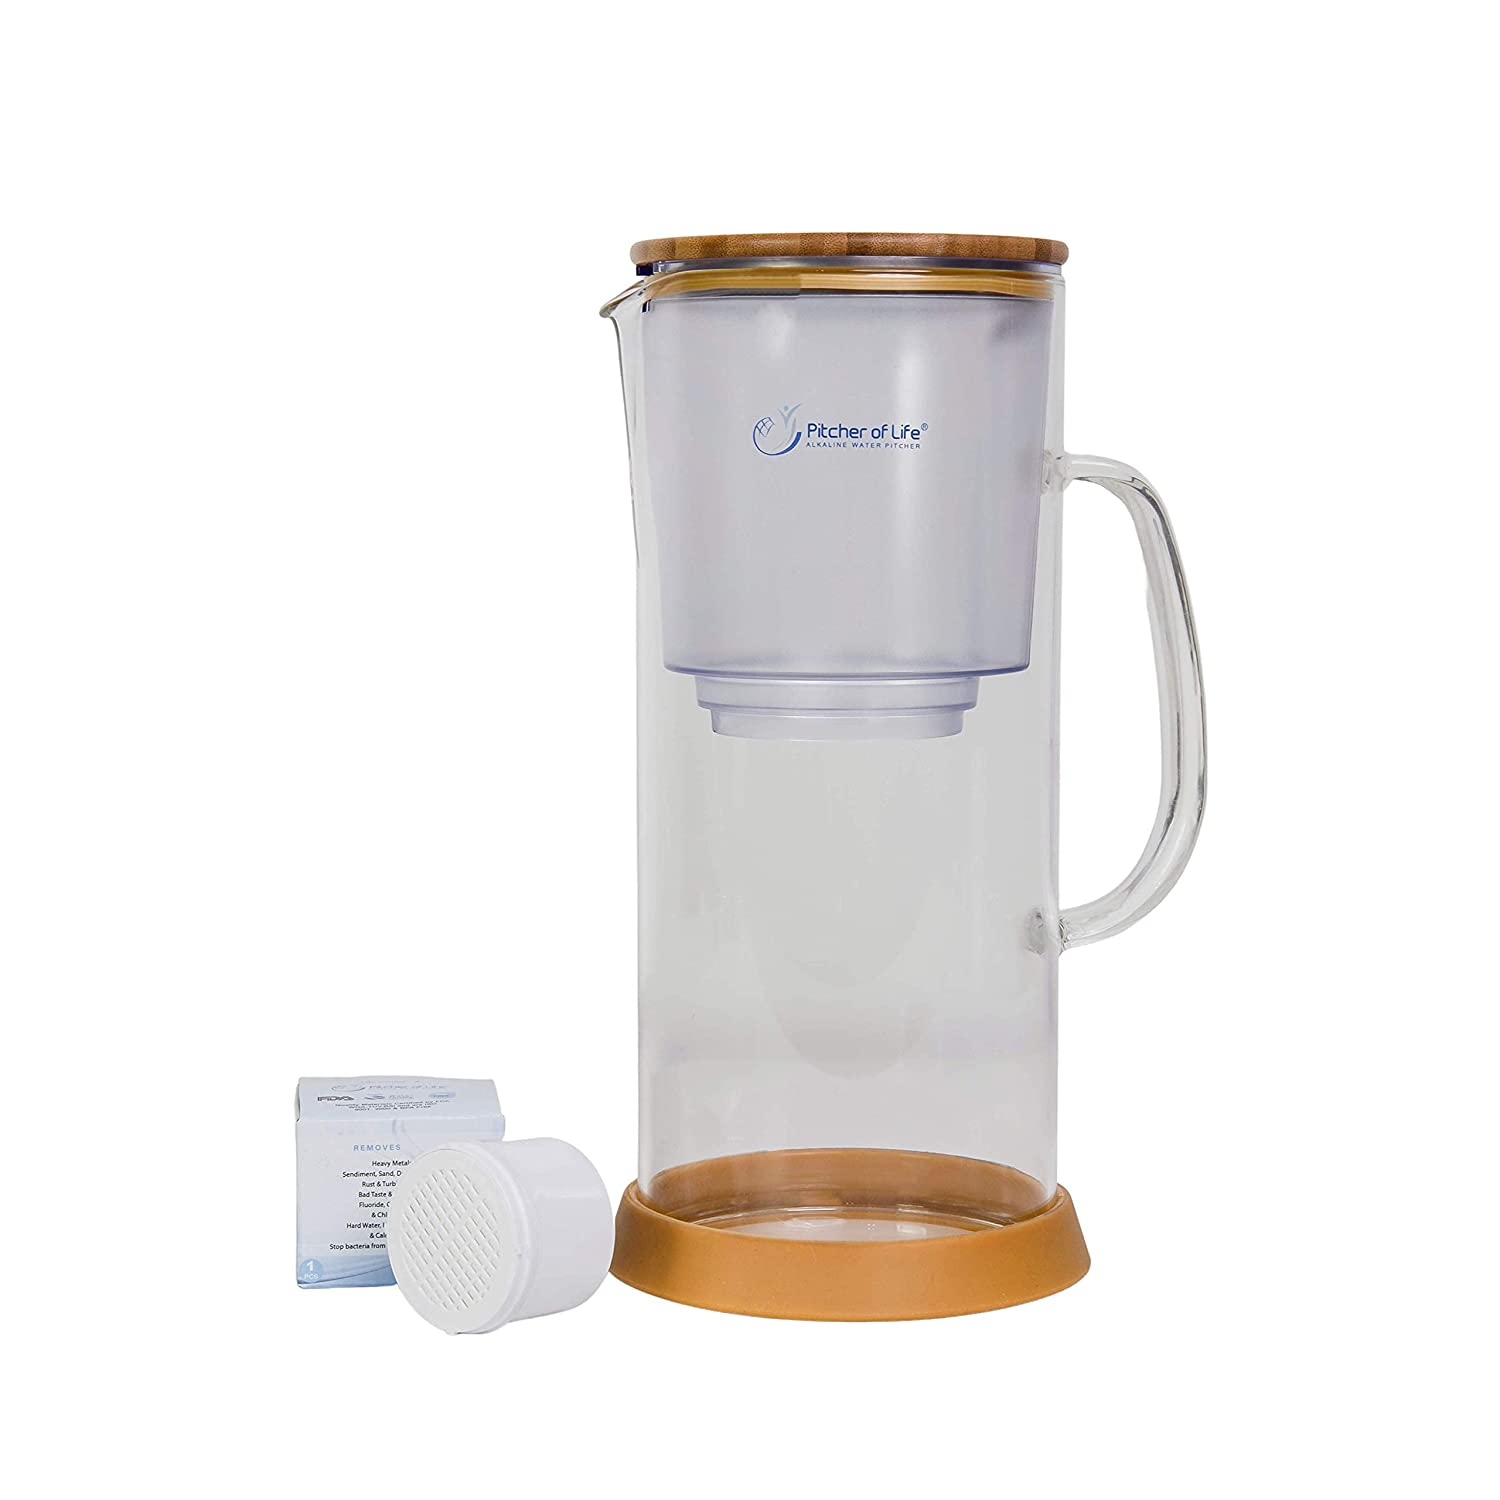 Popular popular Pitcher of Life New Improved 2021 In stock Alkaline Glass - Water Model